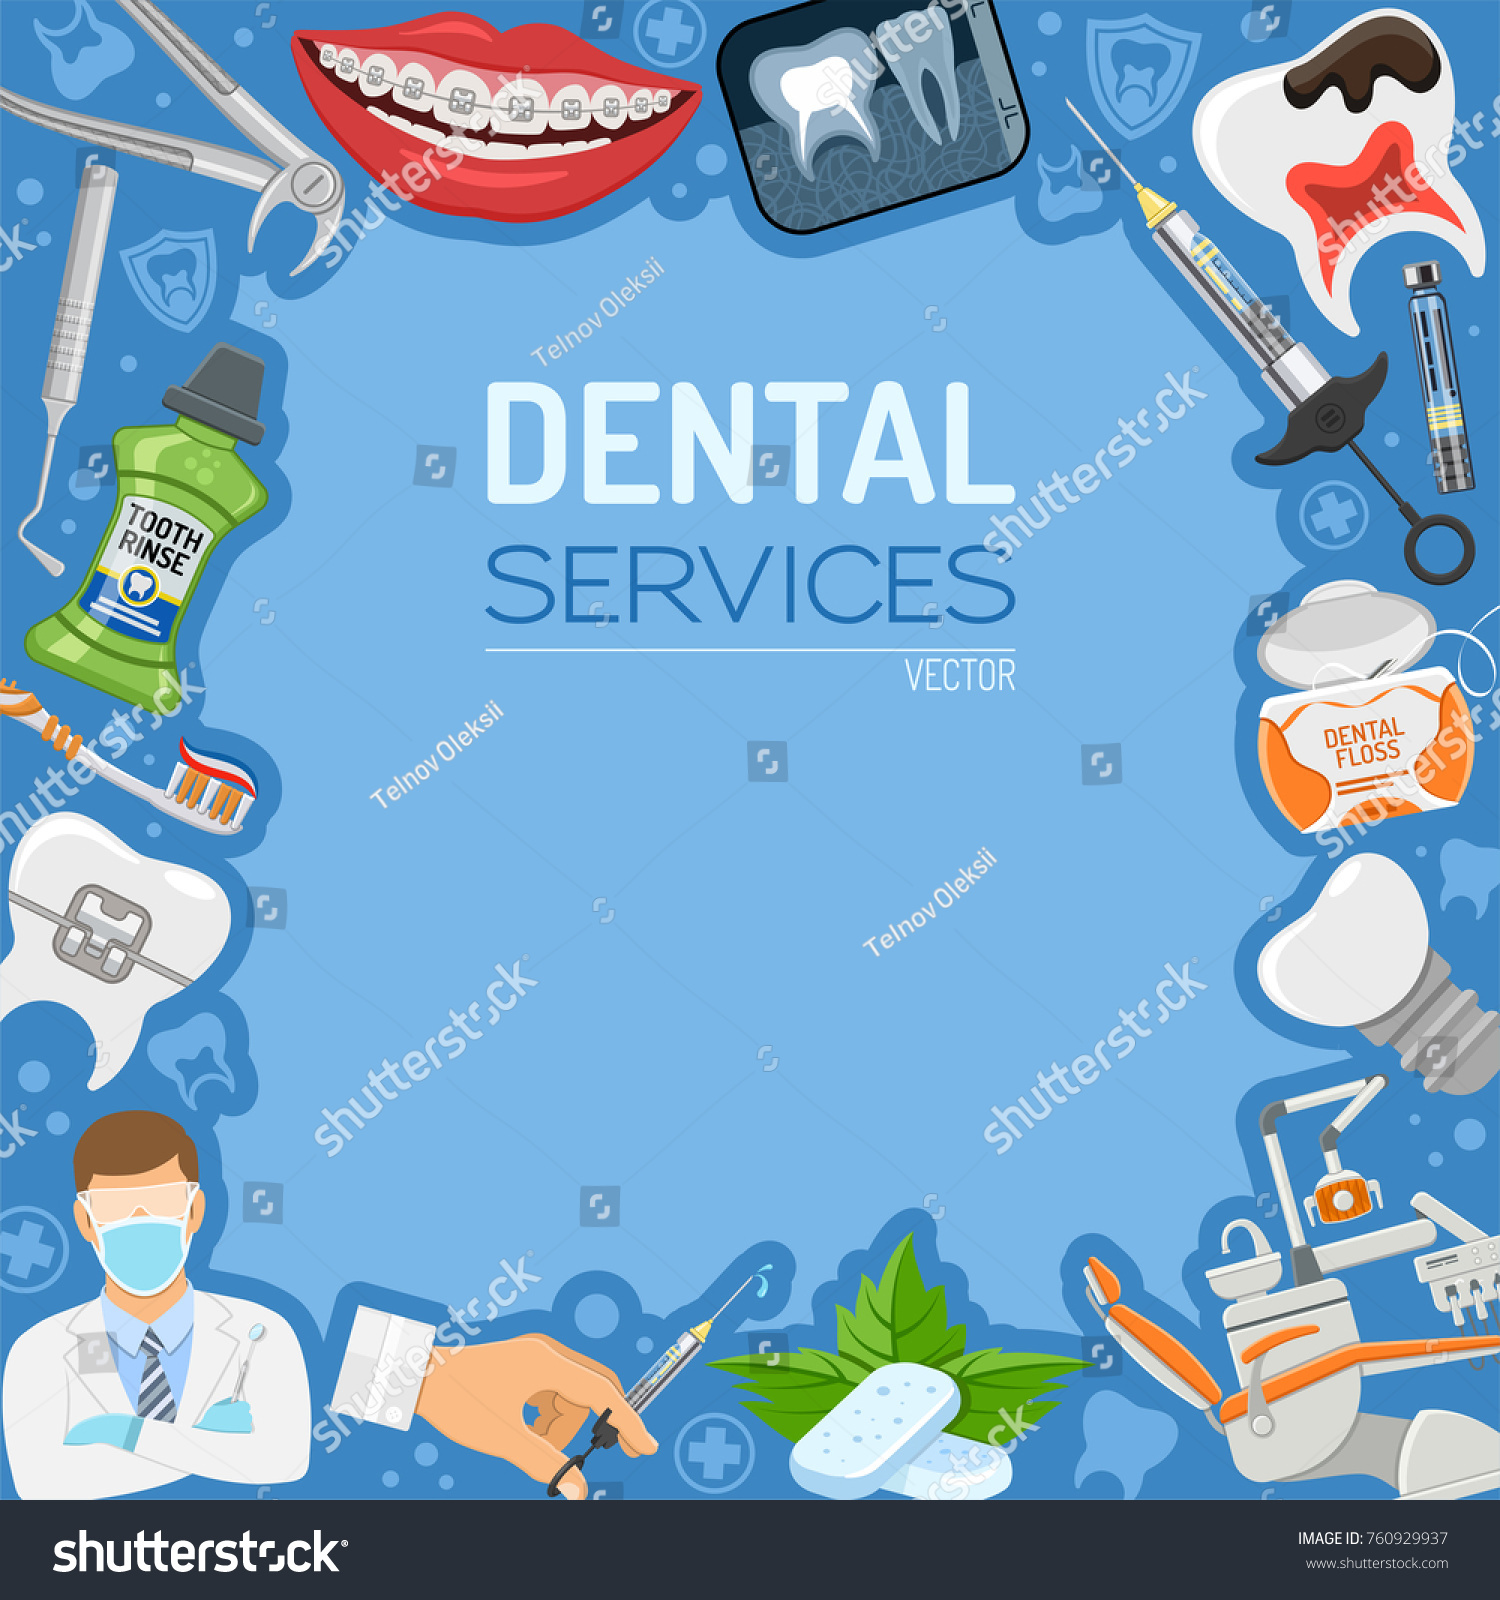 Dental Services Dentistry Hygiene Banner And Frame With Flat Icons Dentist Chair Braces X